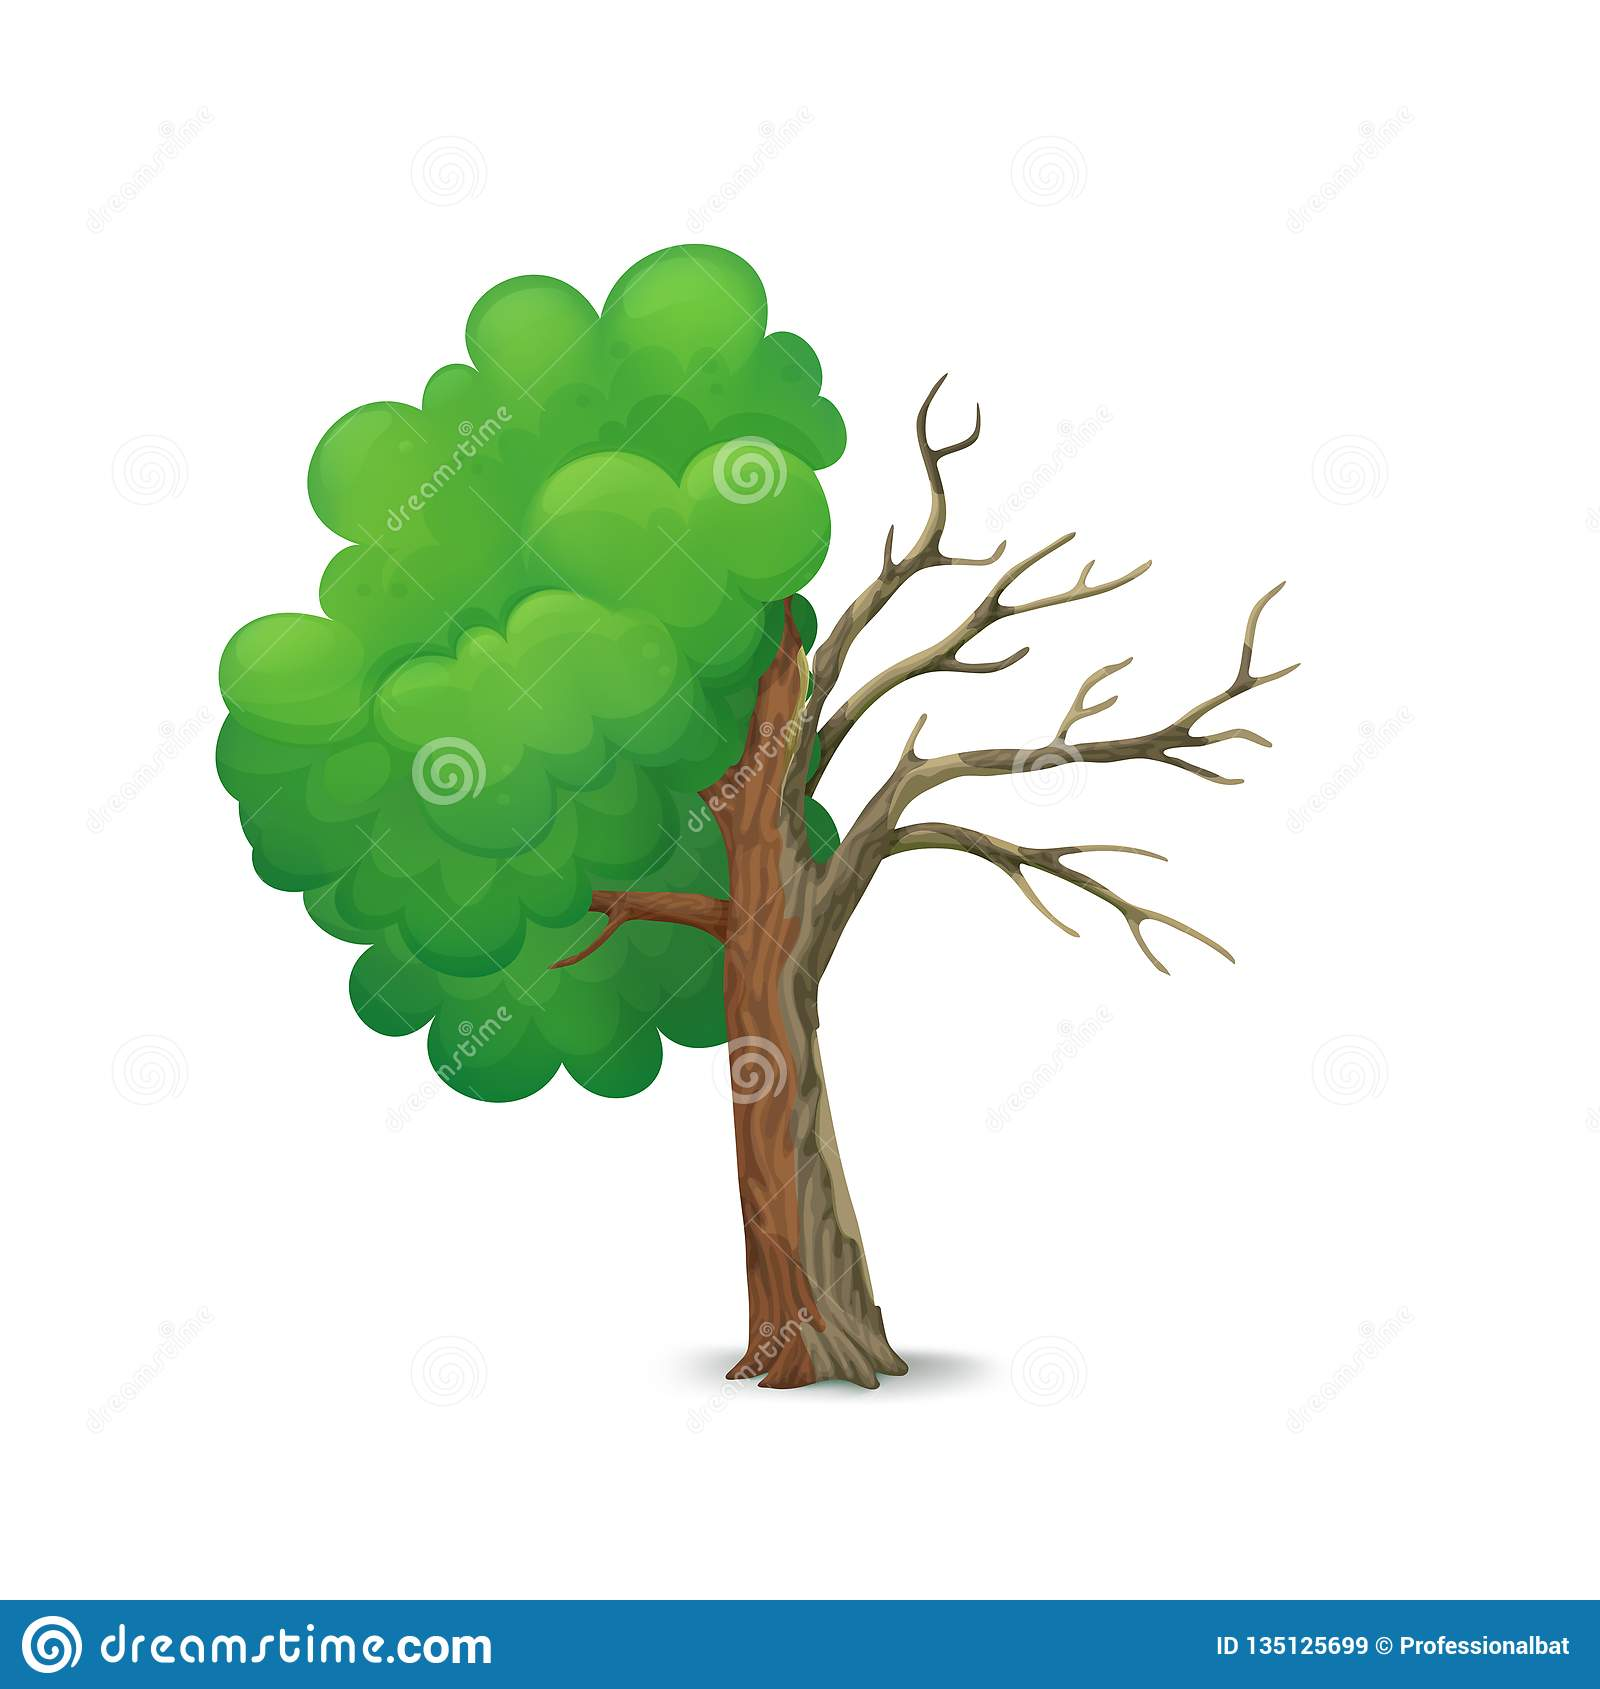 Cartoon tree split in half isolated on a white background. Half with lush green foliage and leafless, dying half.